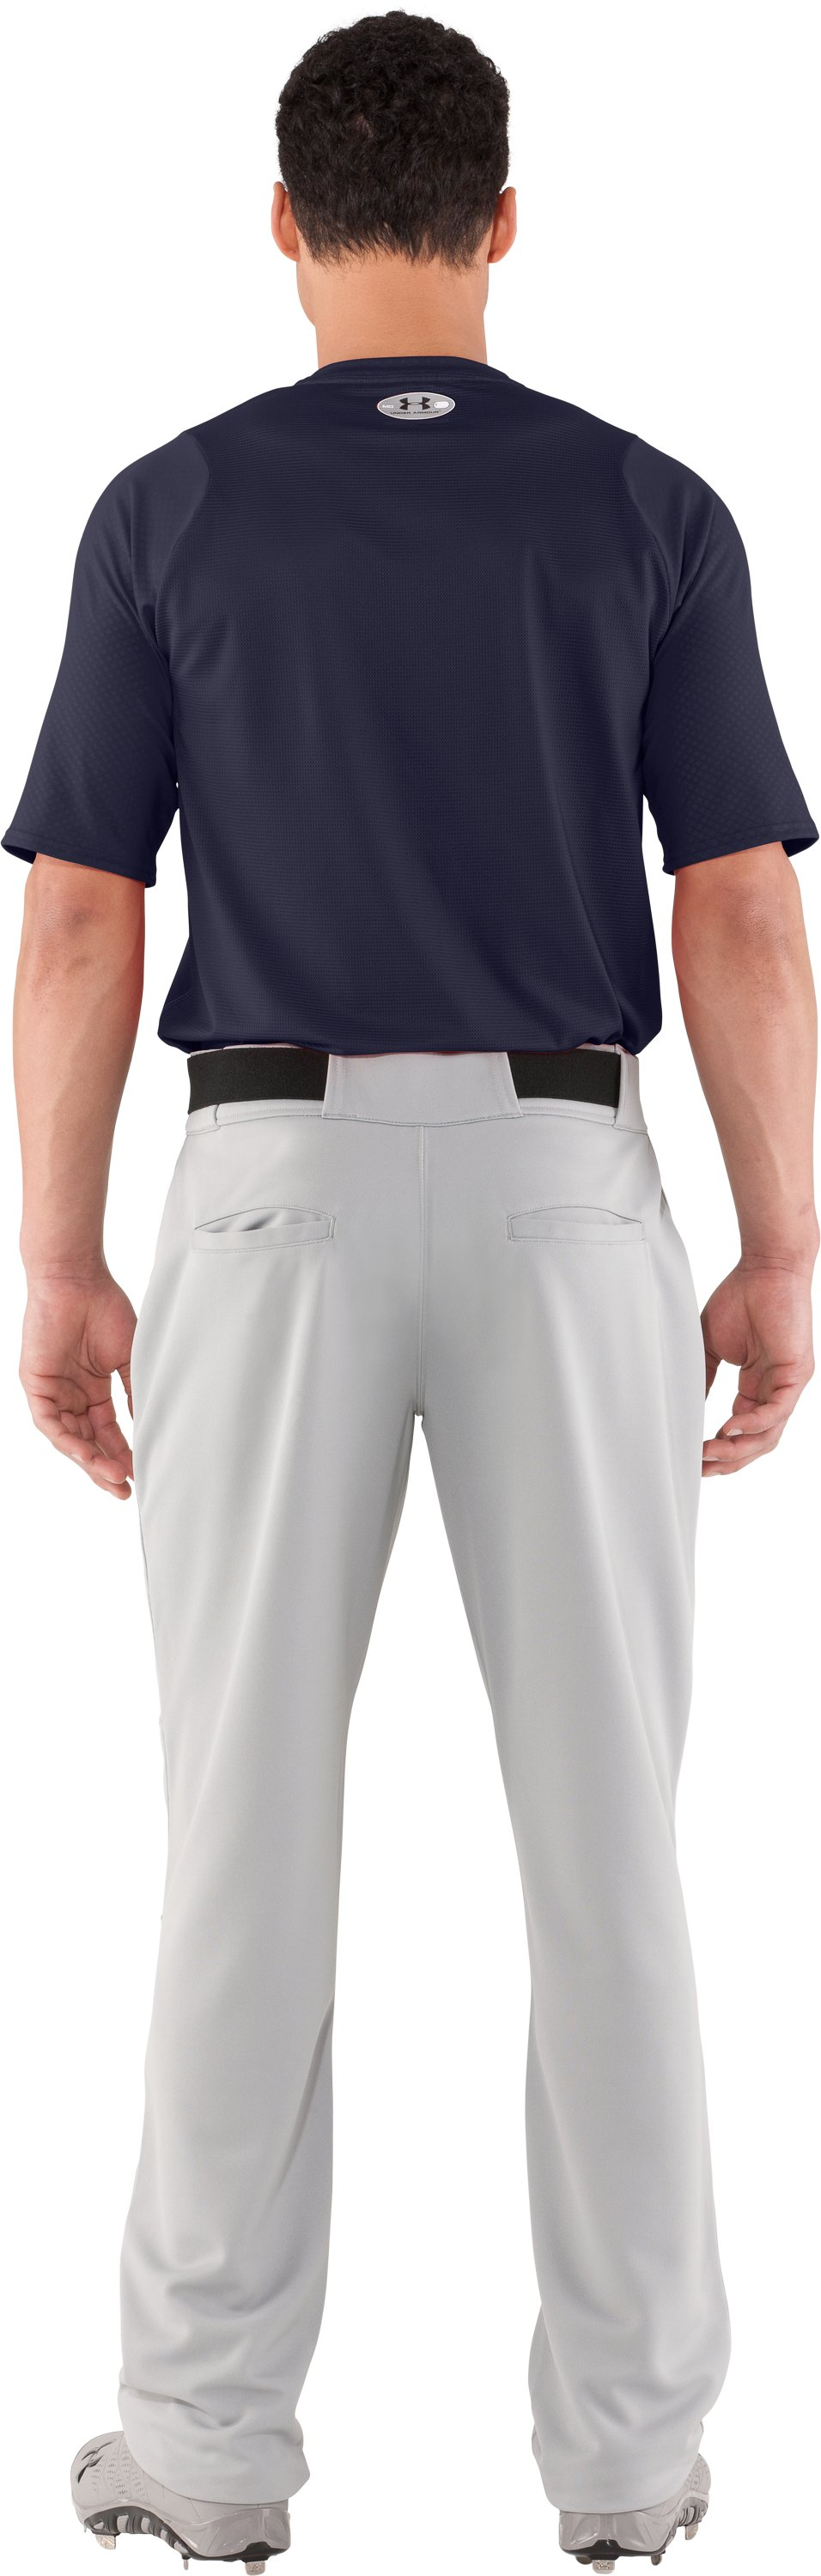 Men's UA Diamond Armour™ Baseball Short Sleeve Baselayer, Midnight Navy, Back